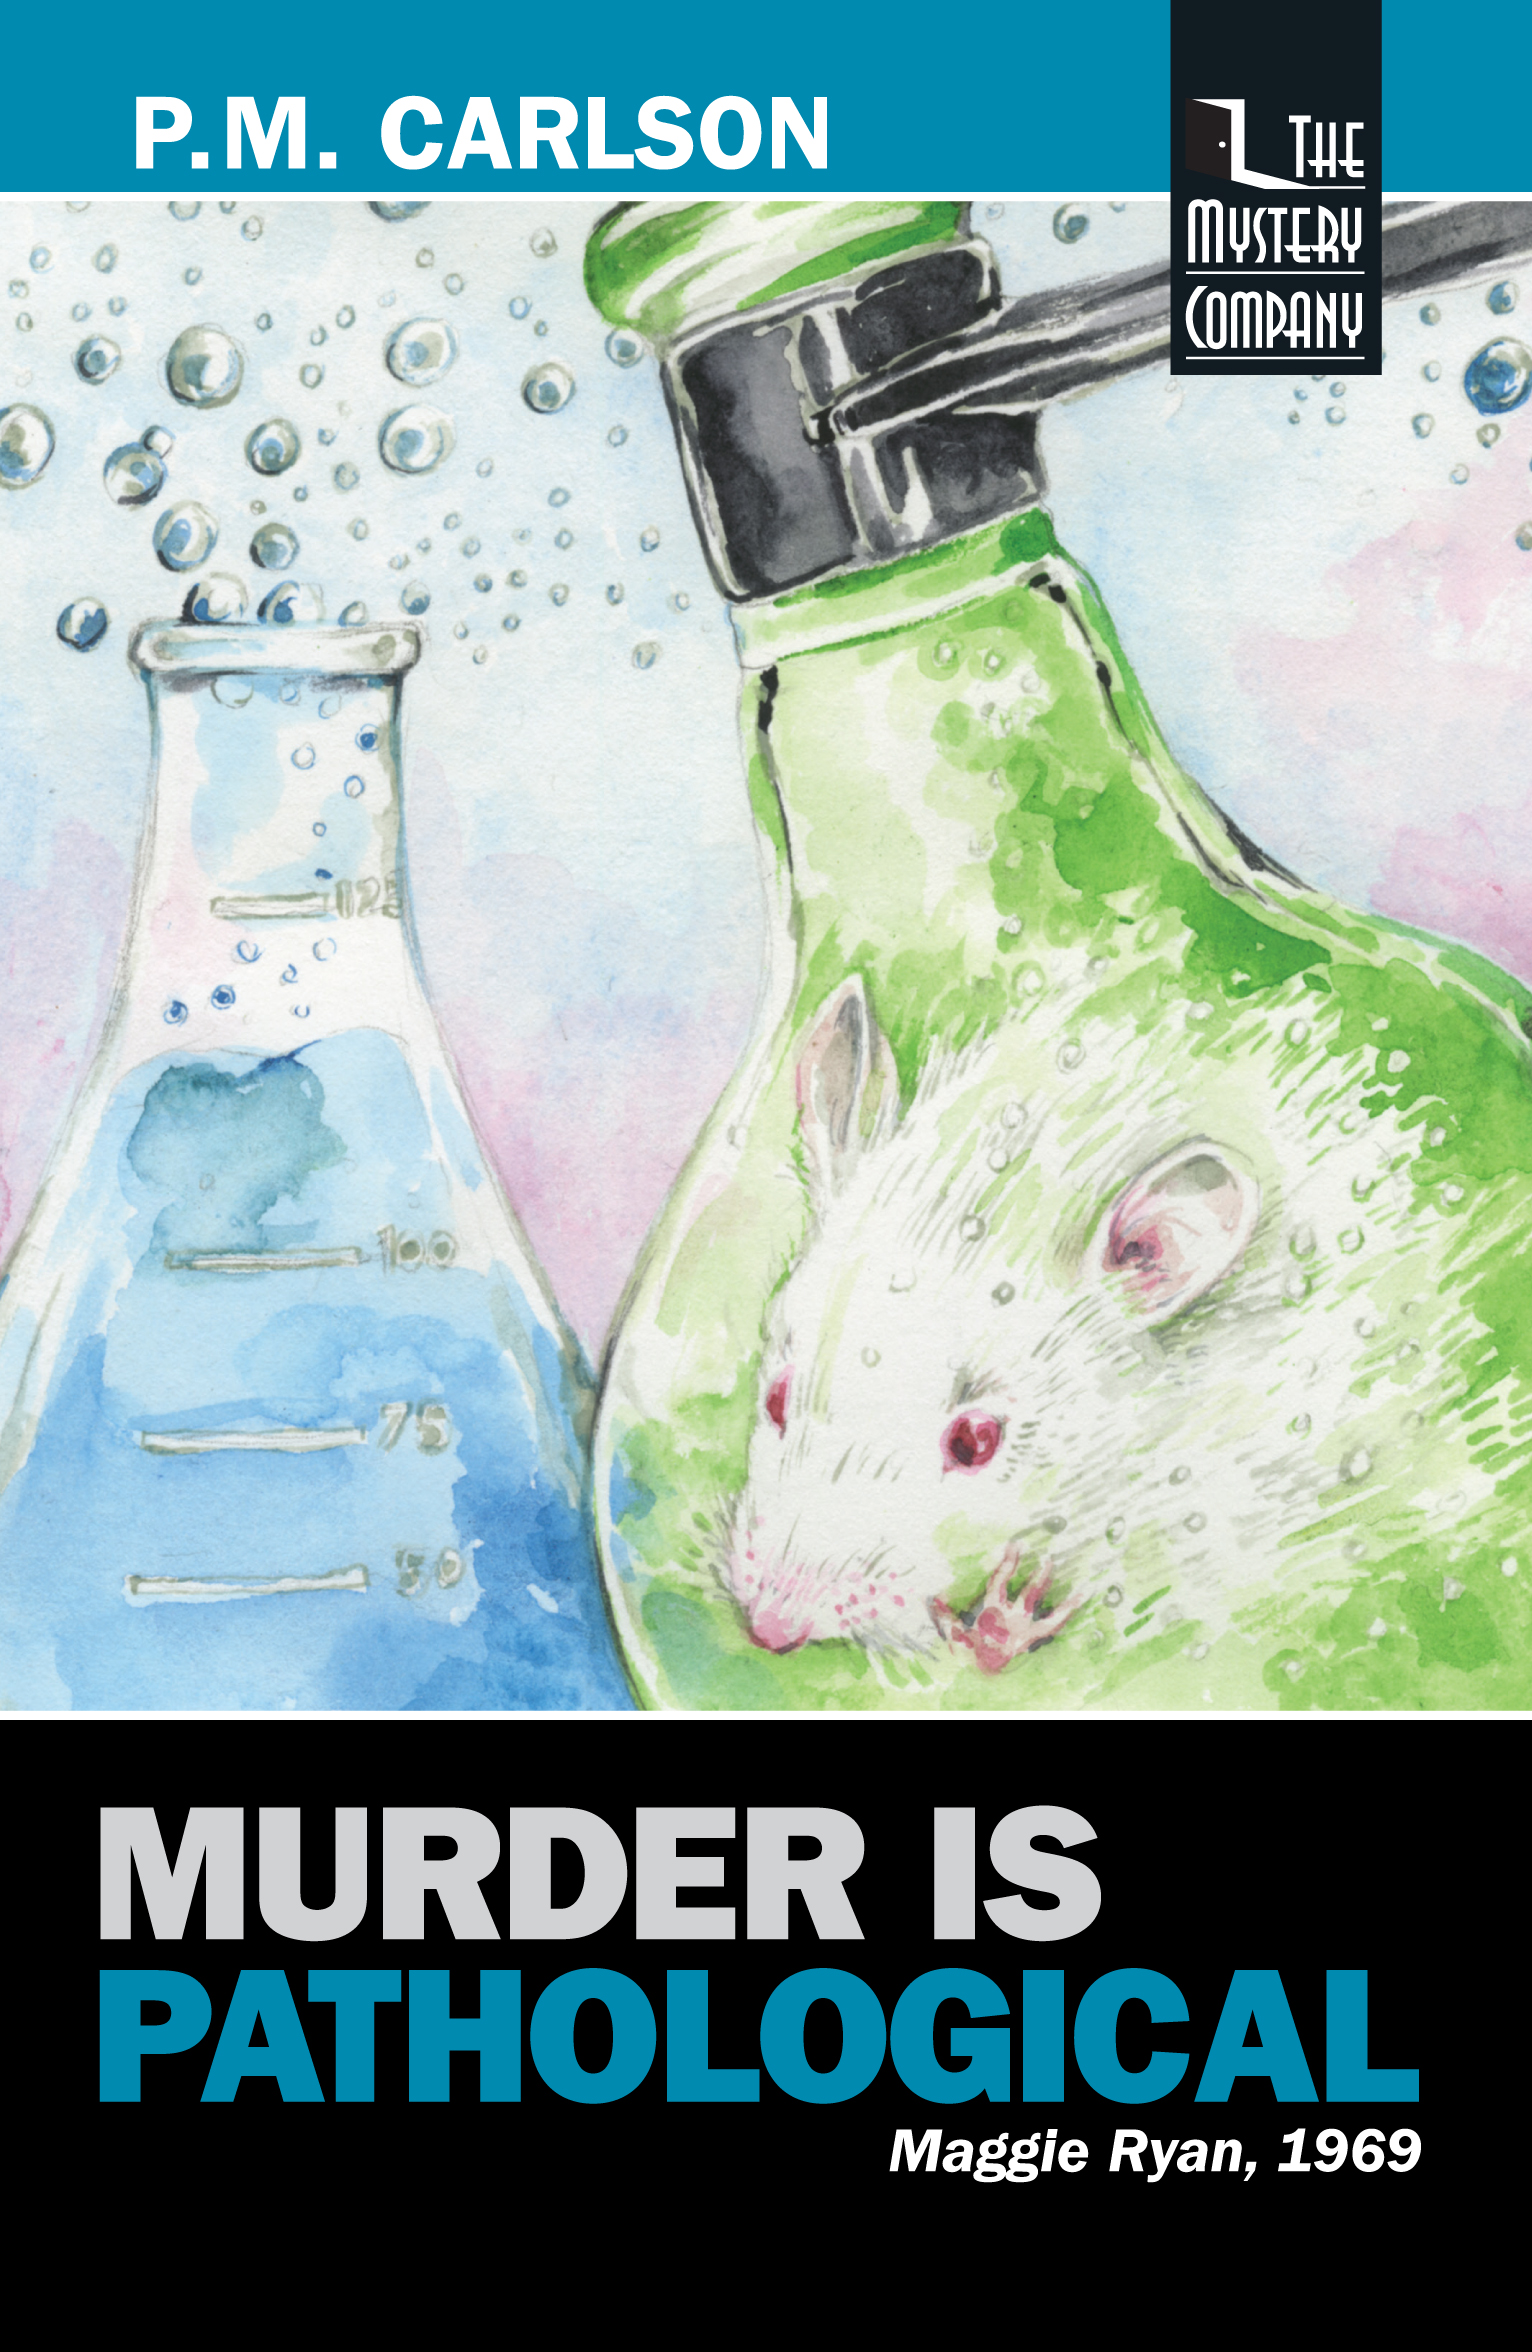 Murder Is Pathological by P.M. Carlson